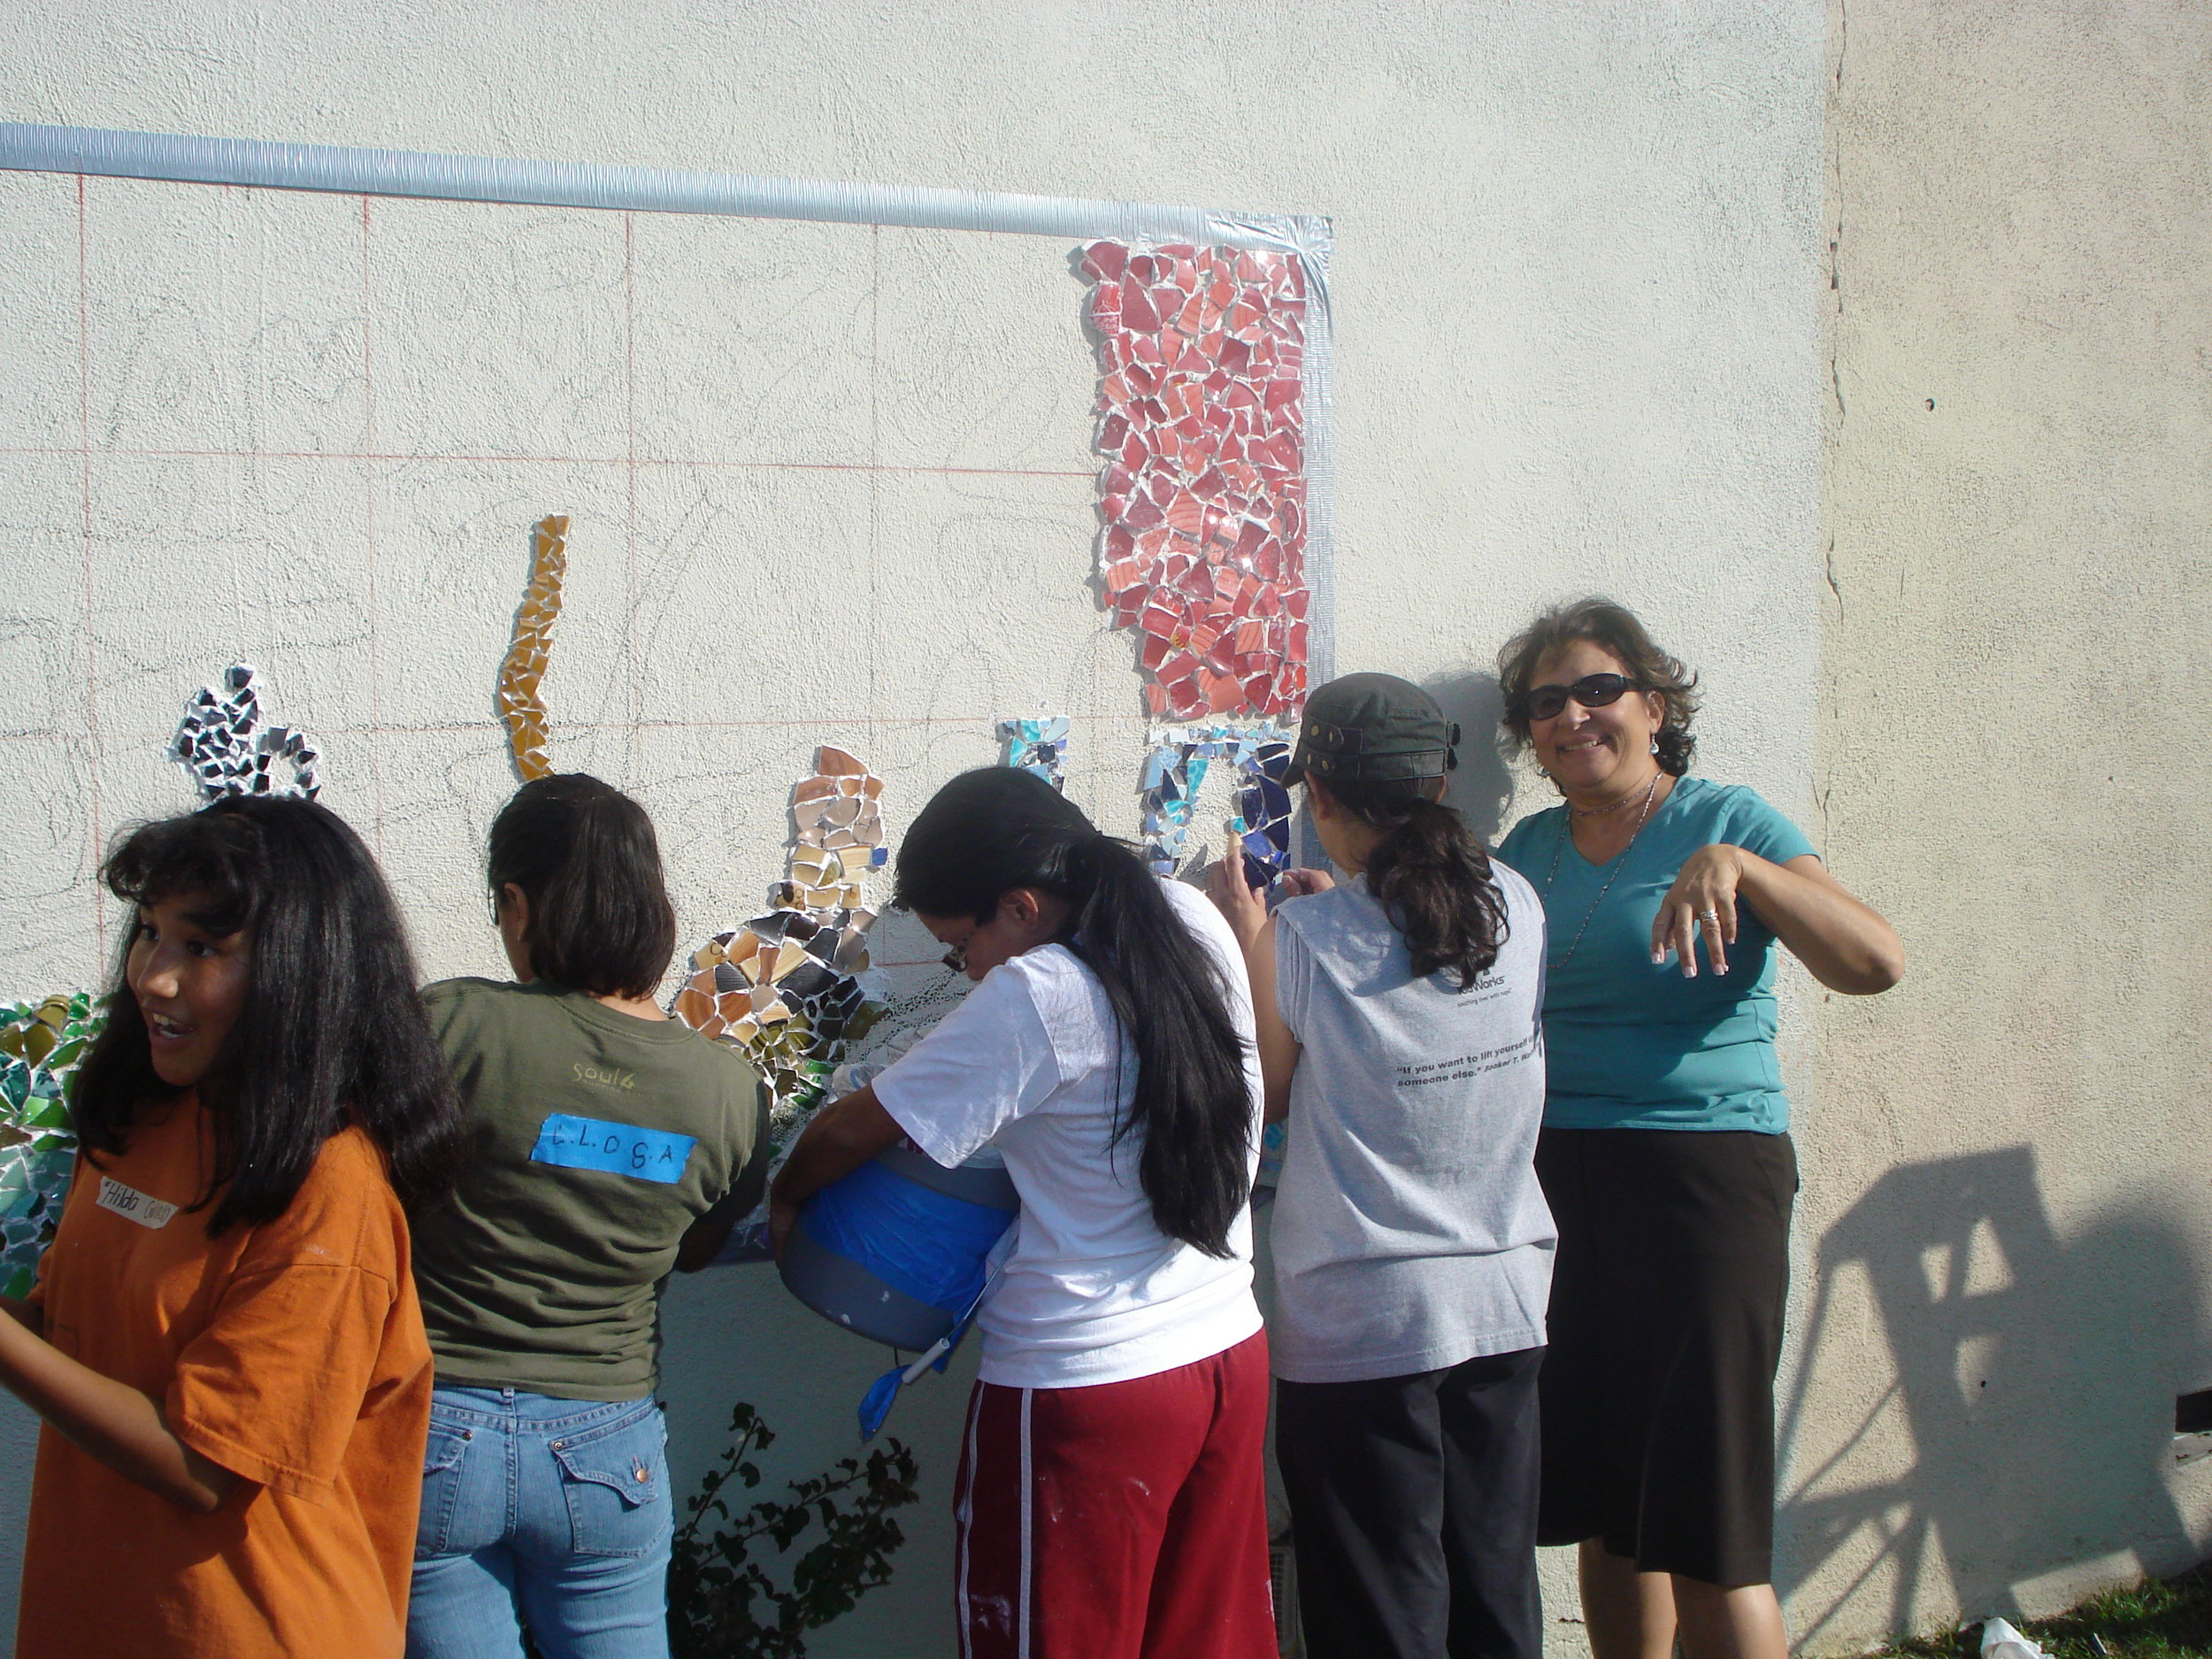 CLOSA students design the mural in 2006